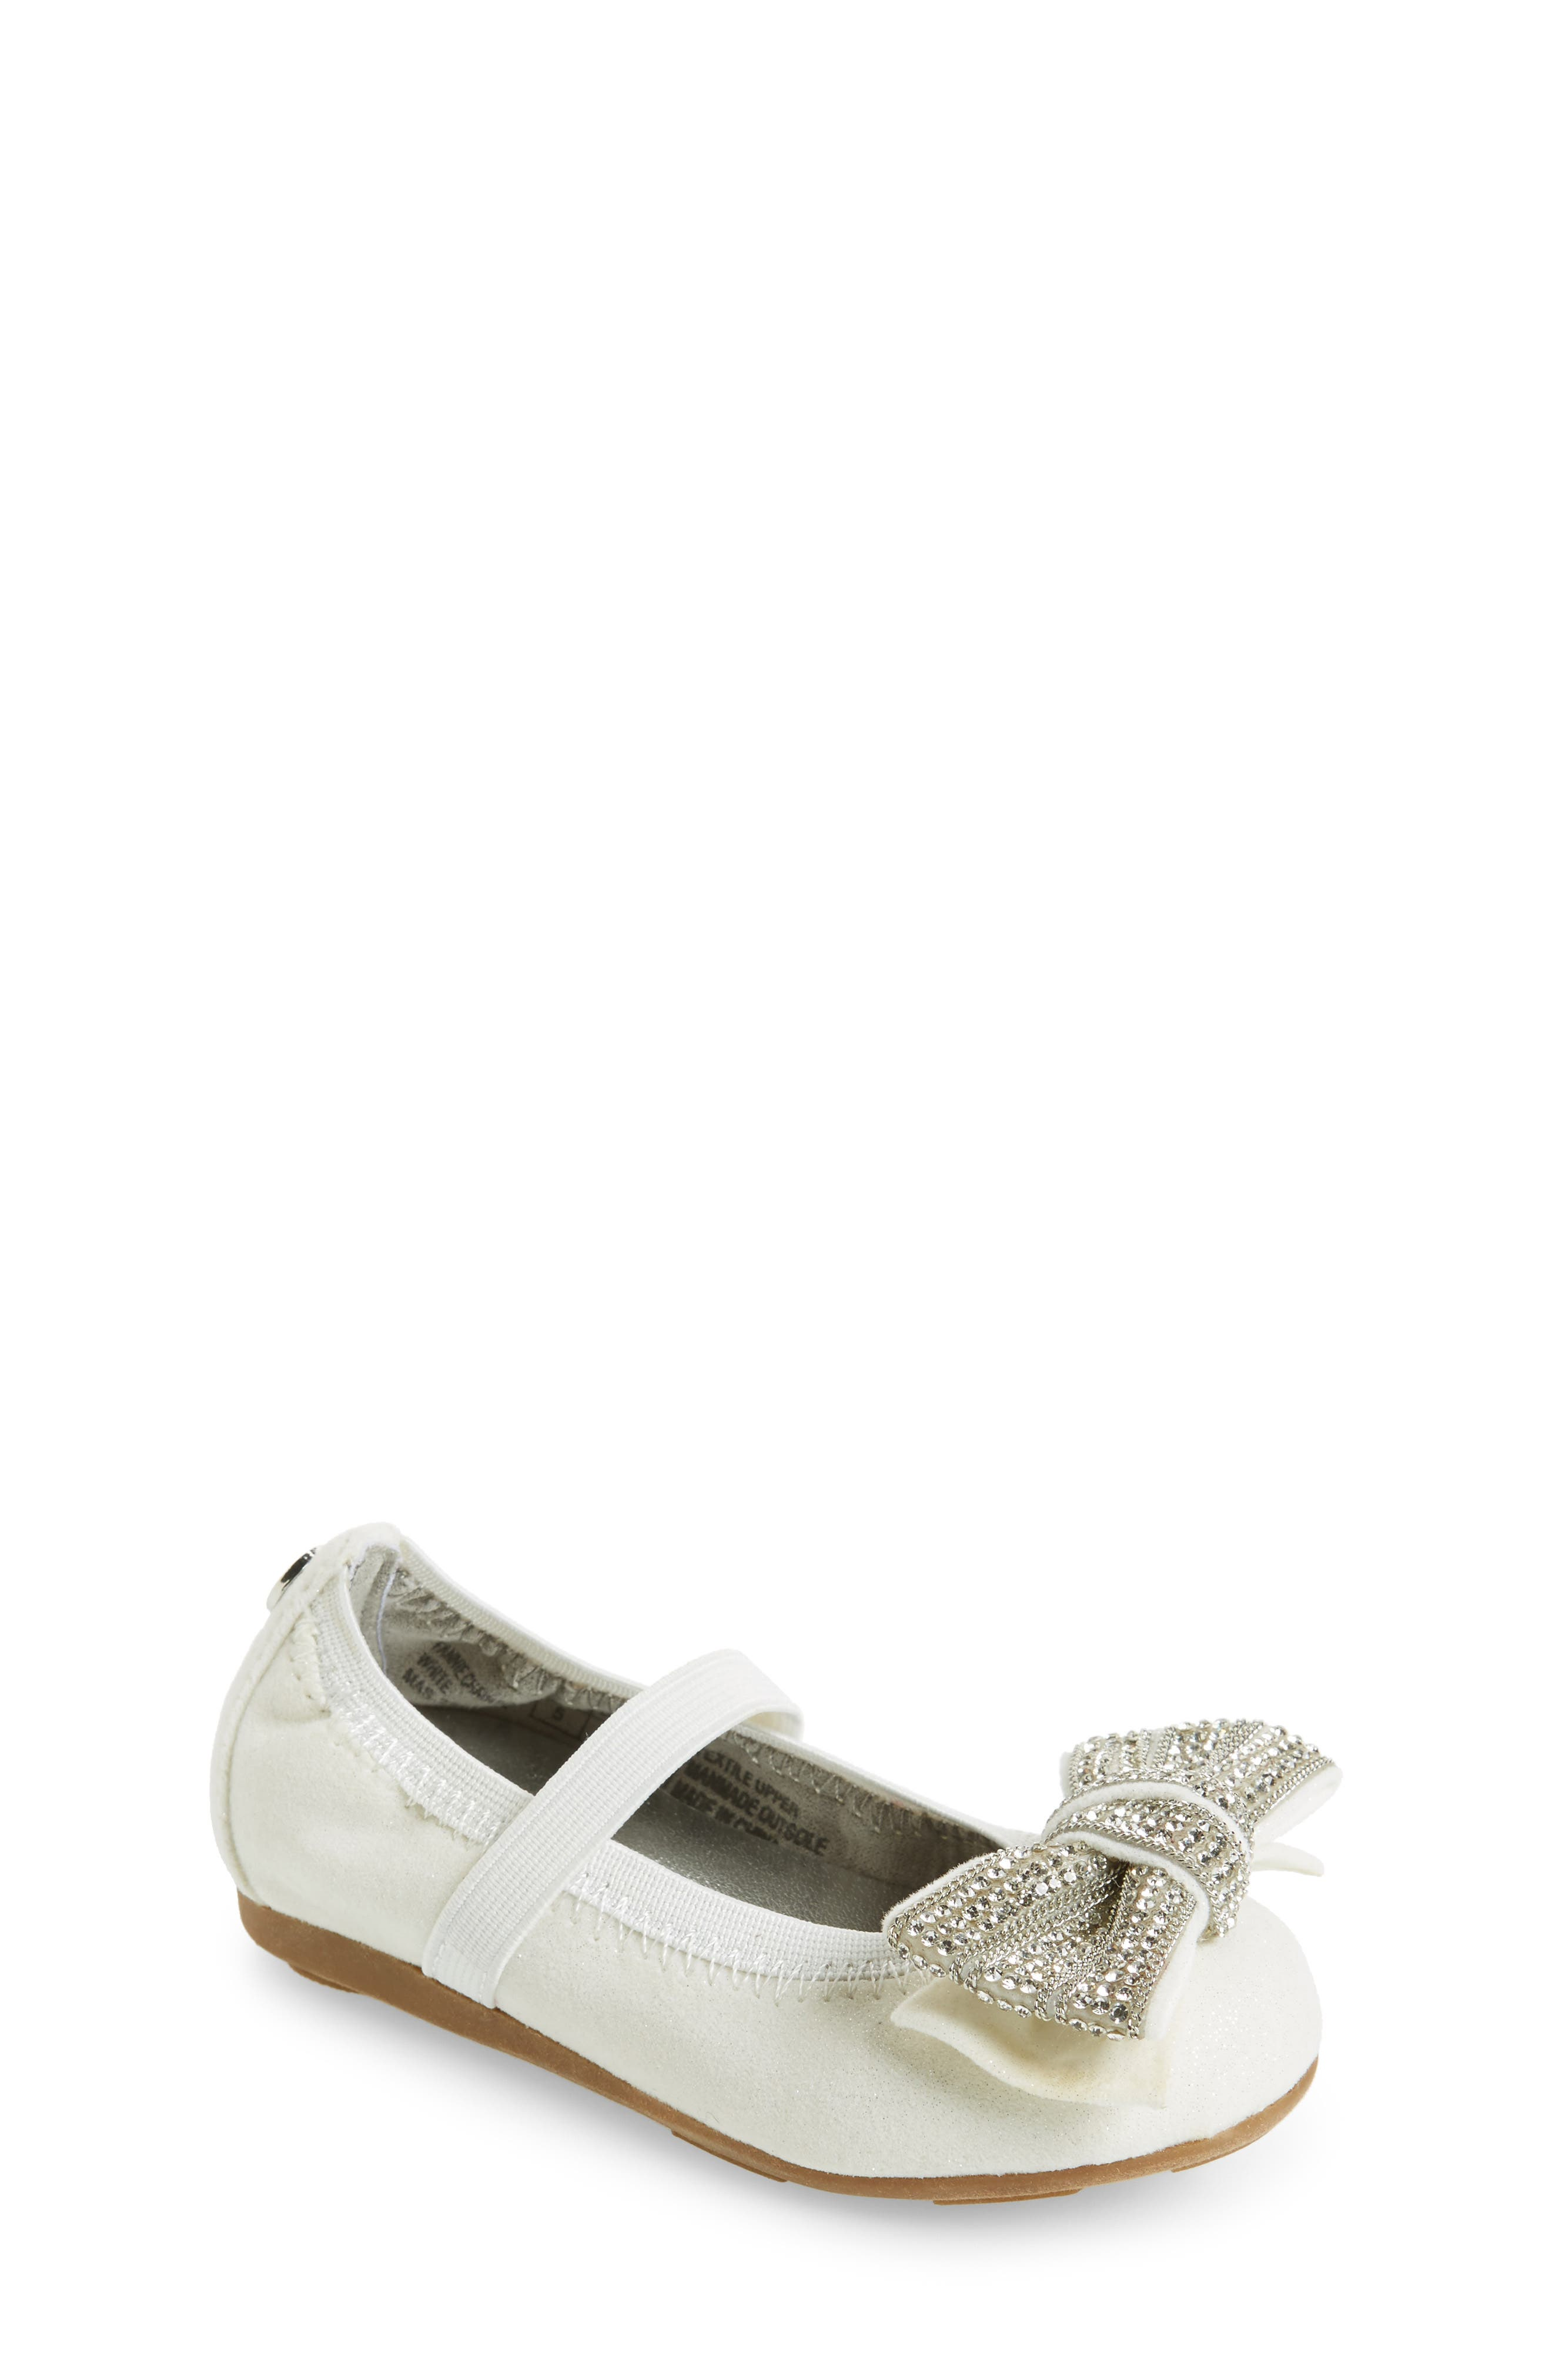 Fannie Embellished Bow Mary Jane Flat,                         Main,                         color, White